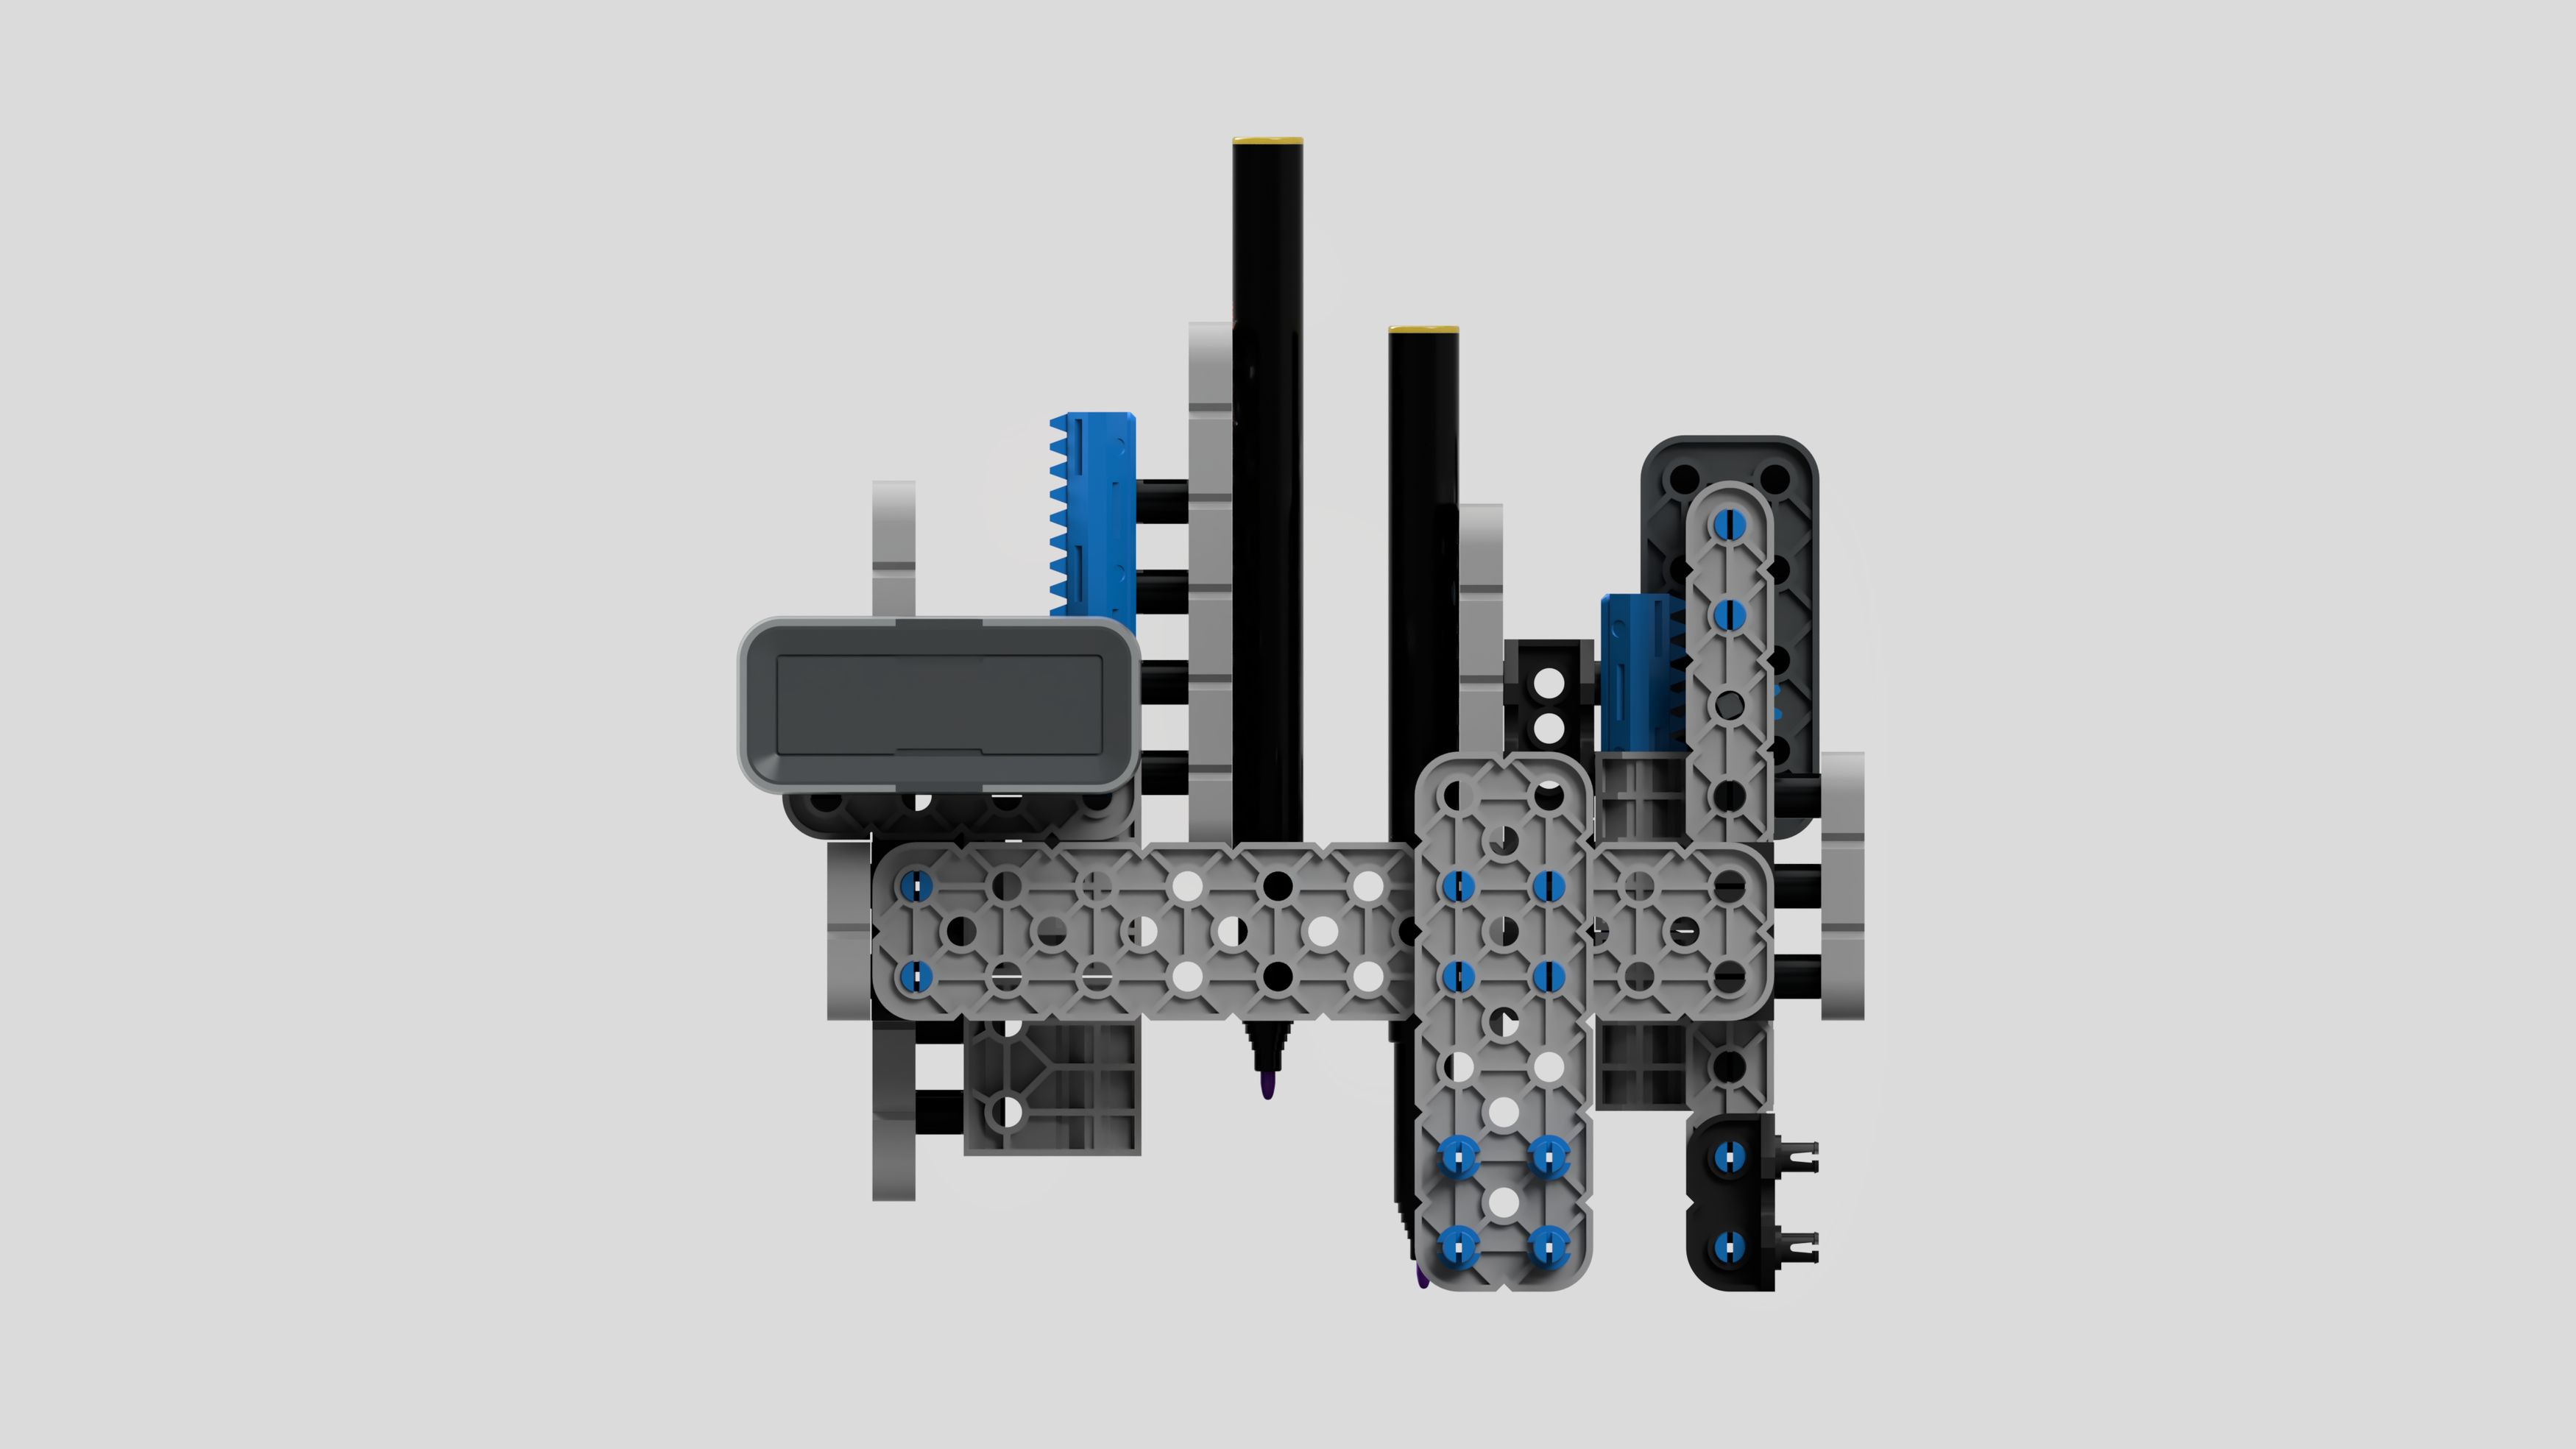 Robotic-pen-vex-iq---vexcode-v2-0-2020-may-24-04-41-46pm-000-customizedview5813002459-png-3500-3500